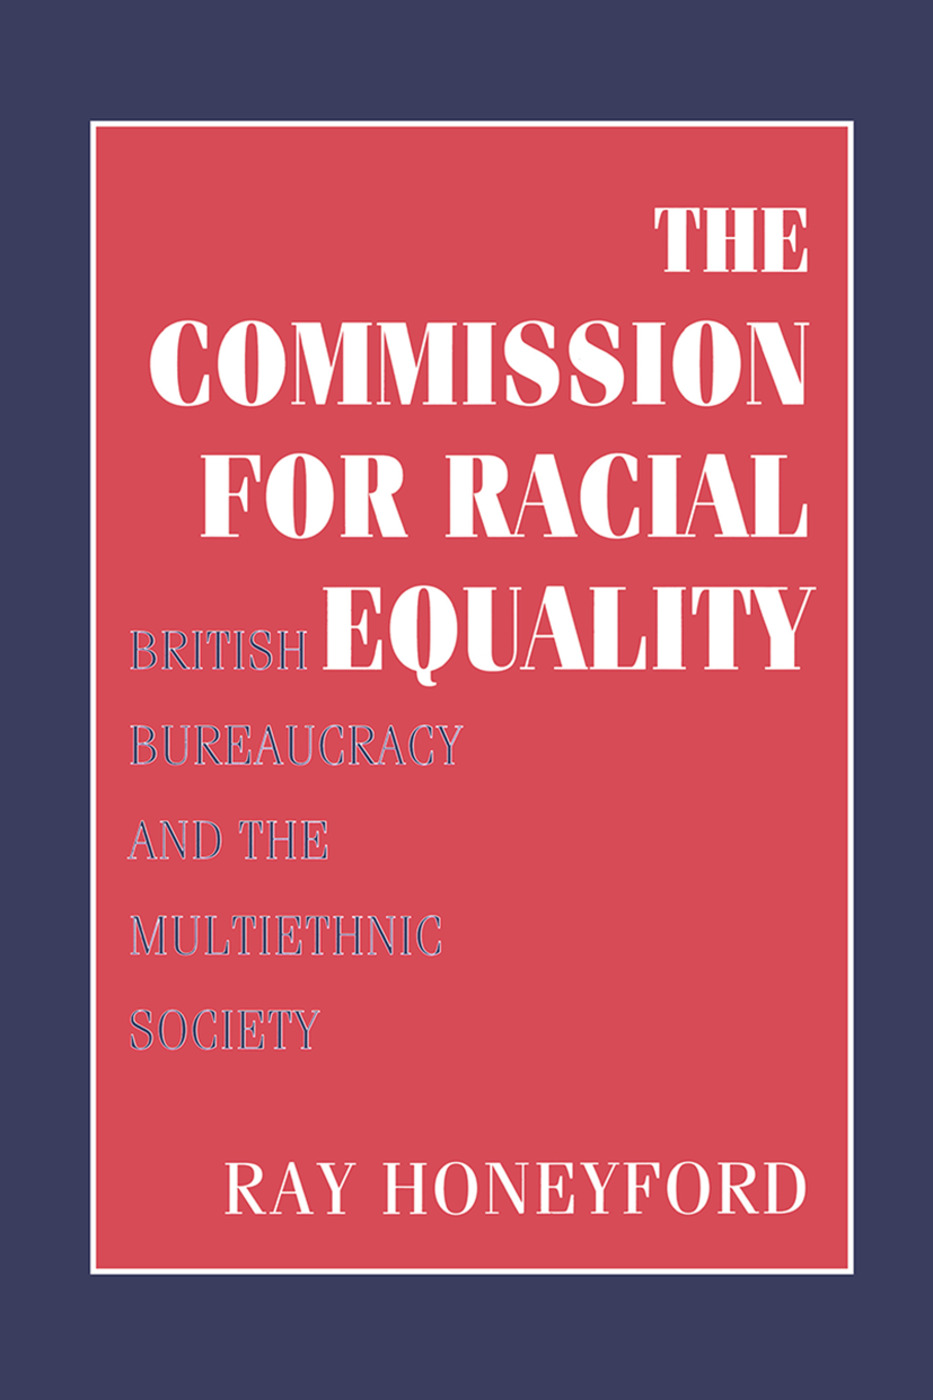 Commission for Racial Equality